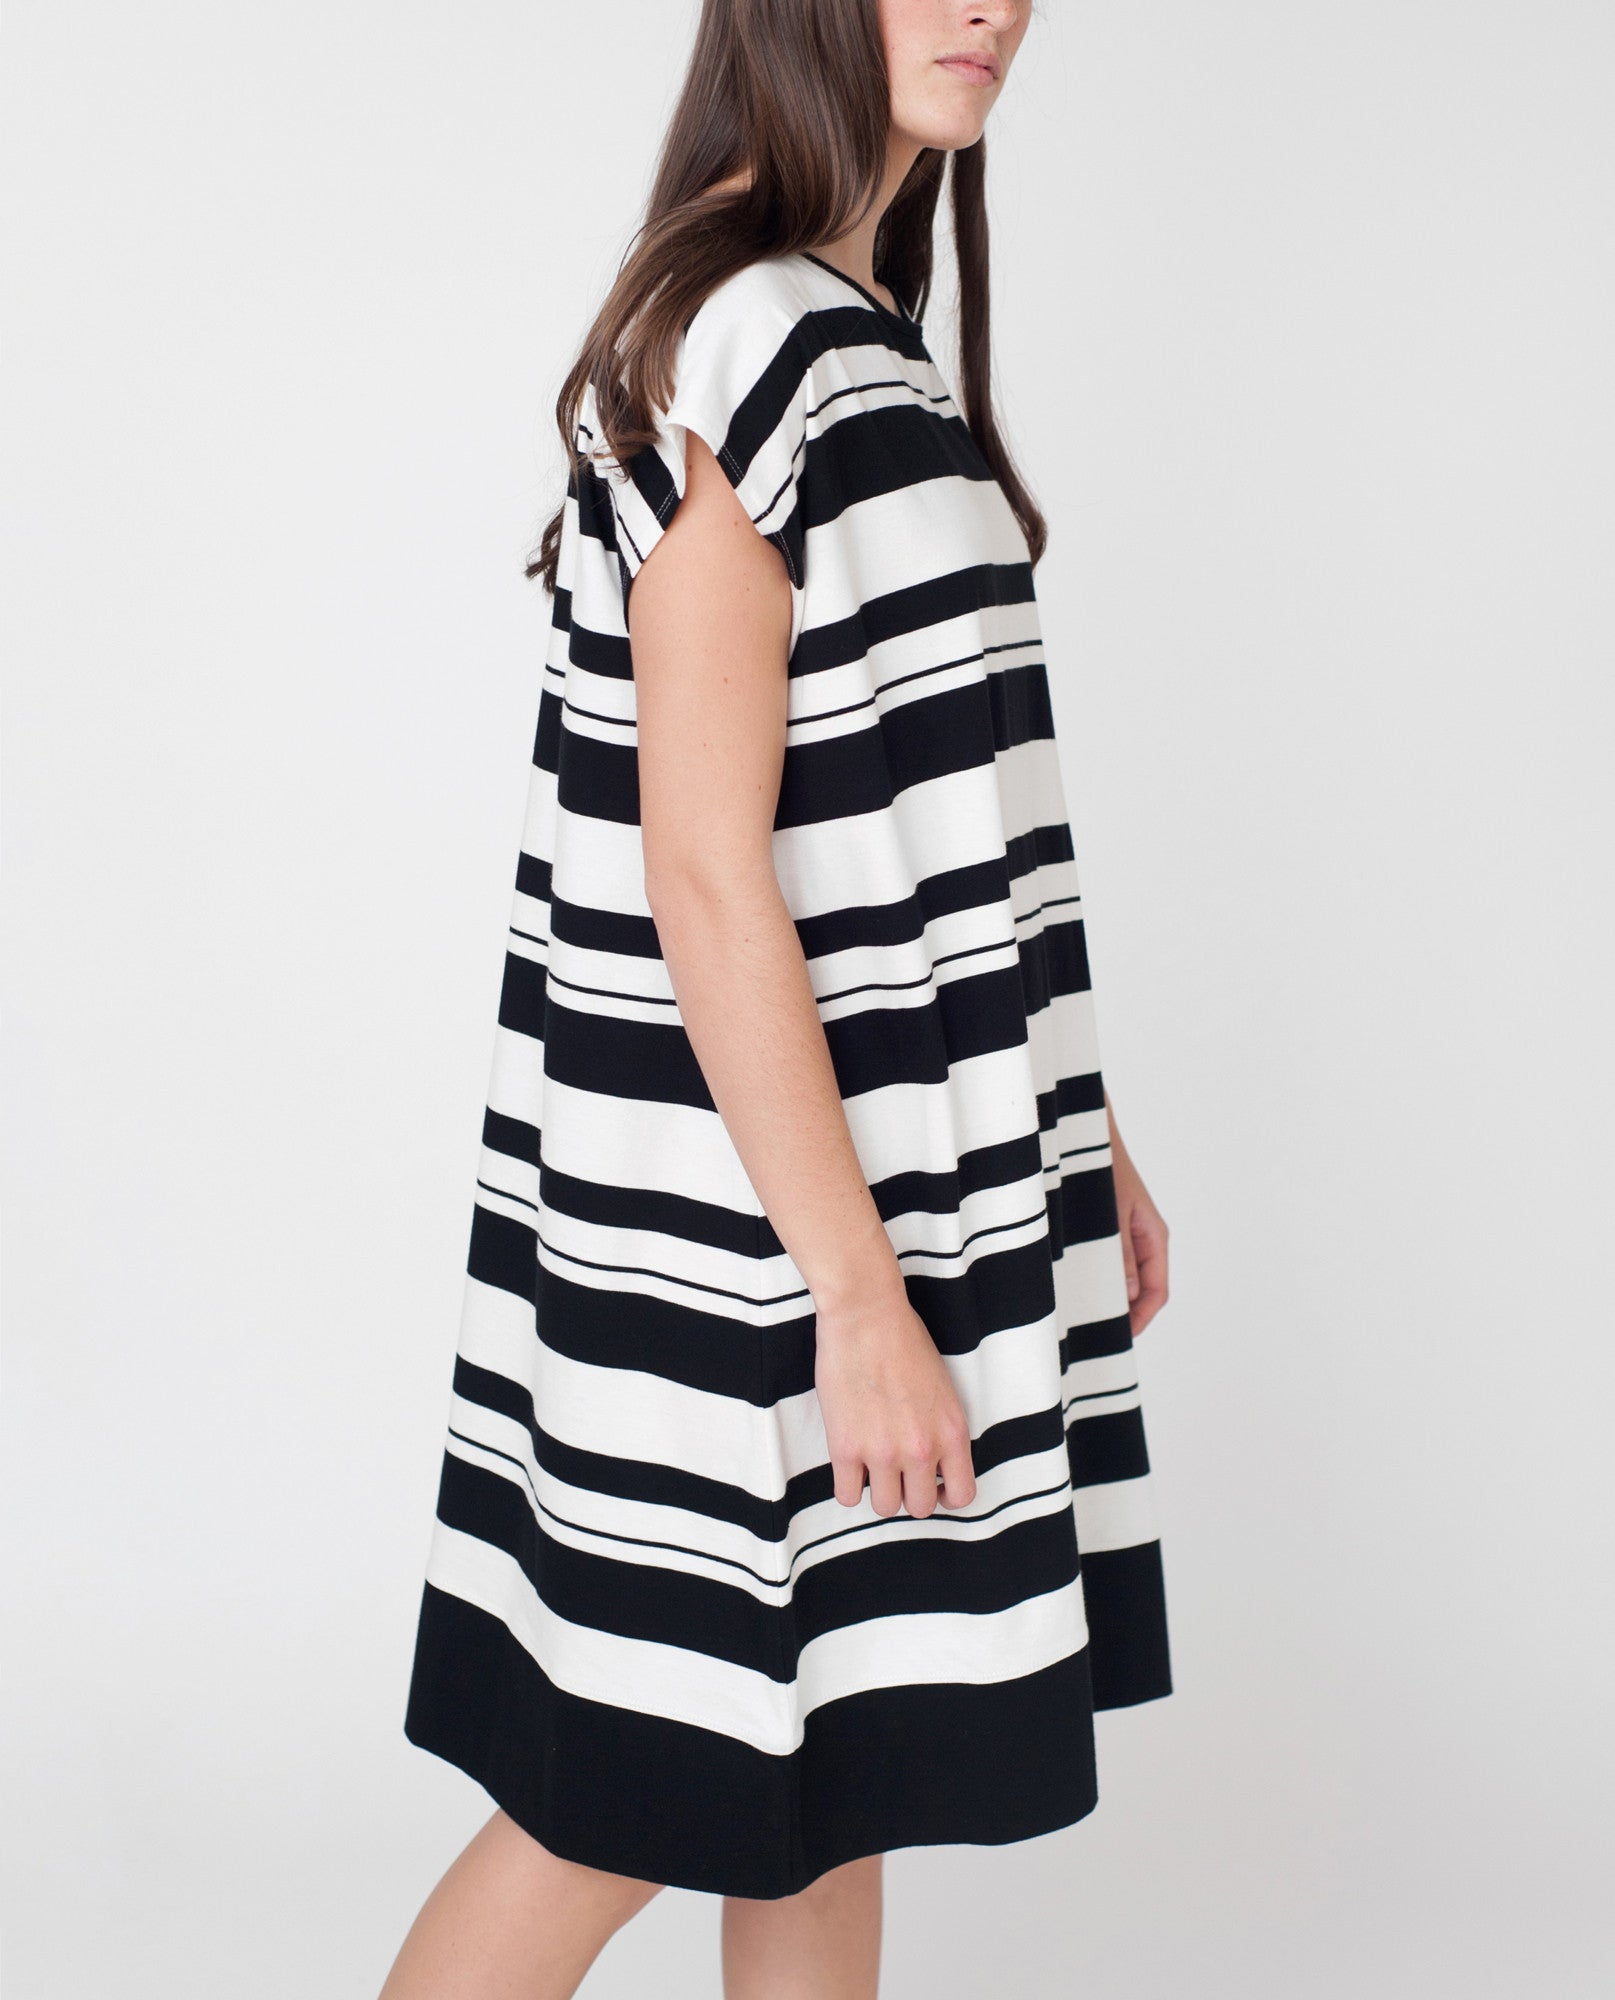 NANCY Organic Cotton Dress In Black And Off White